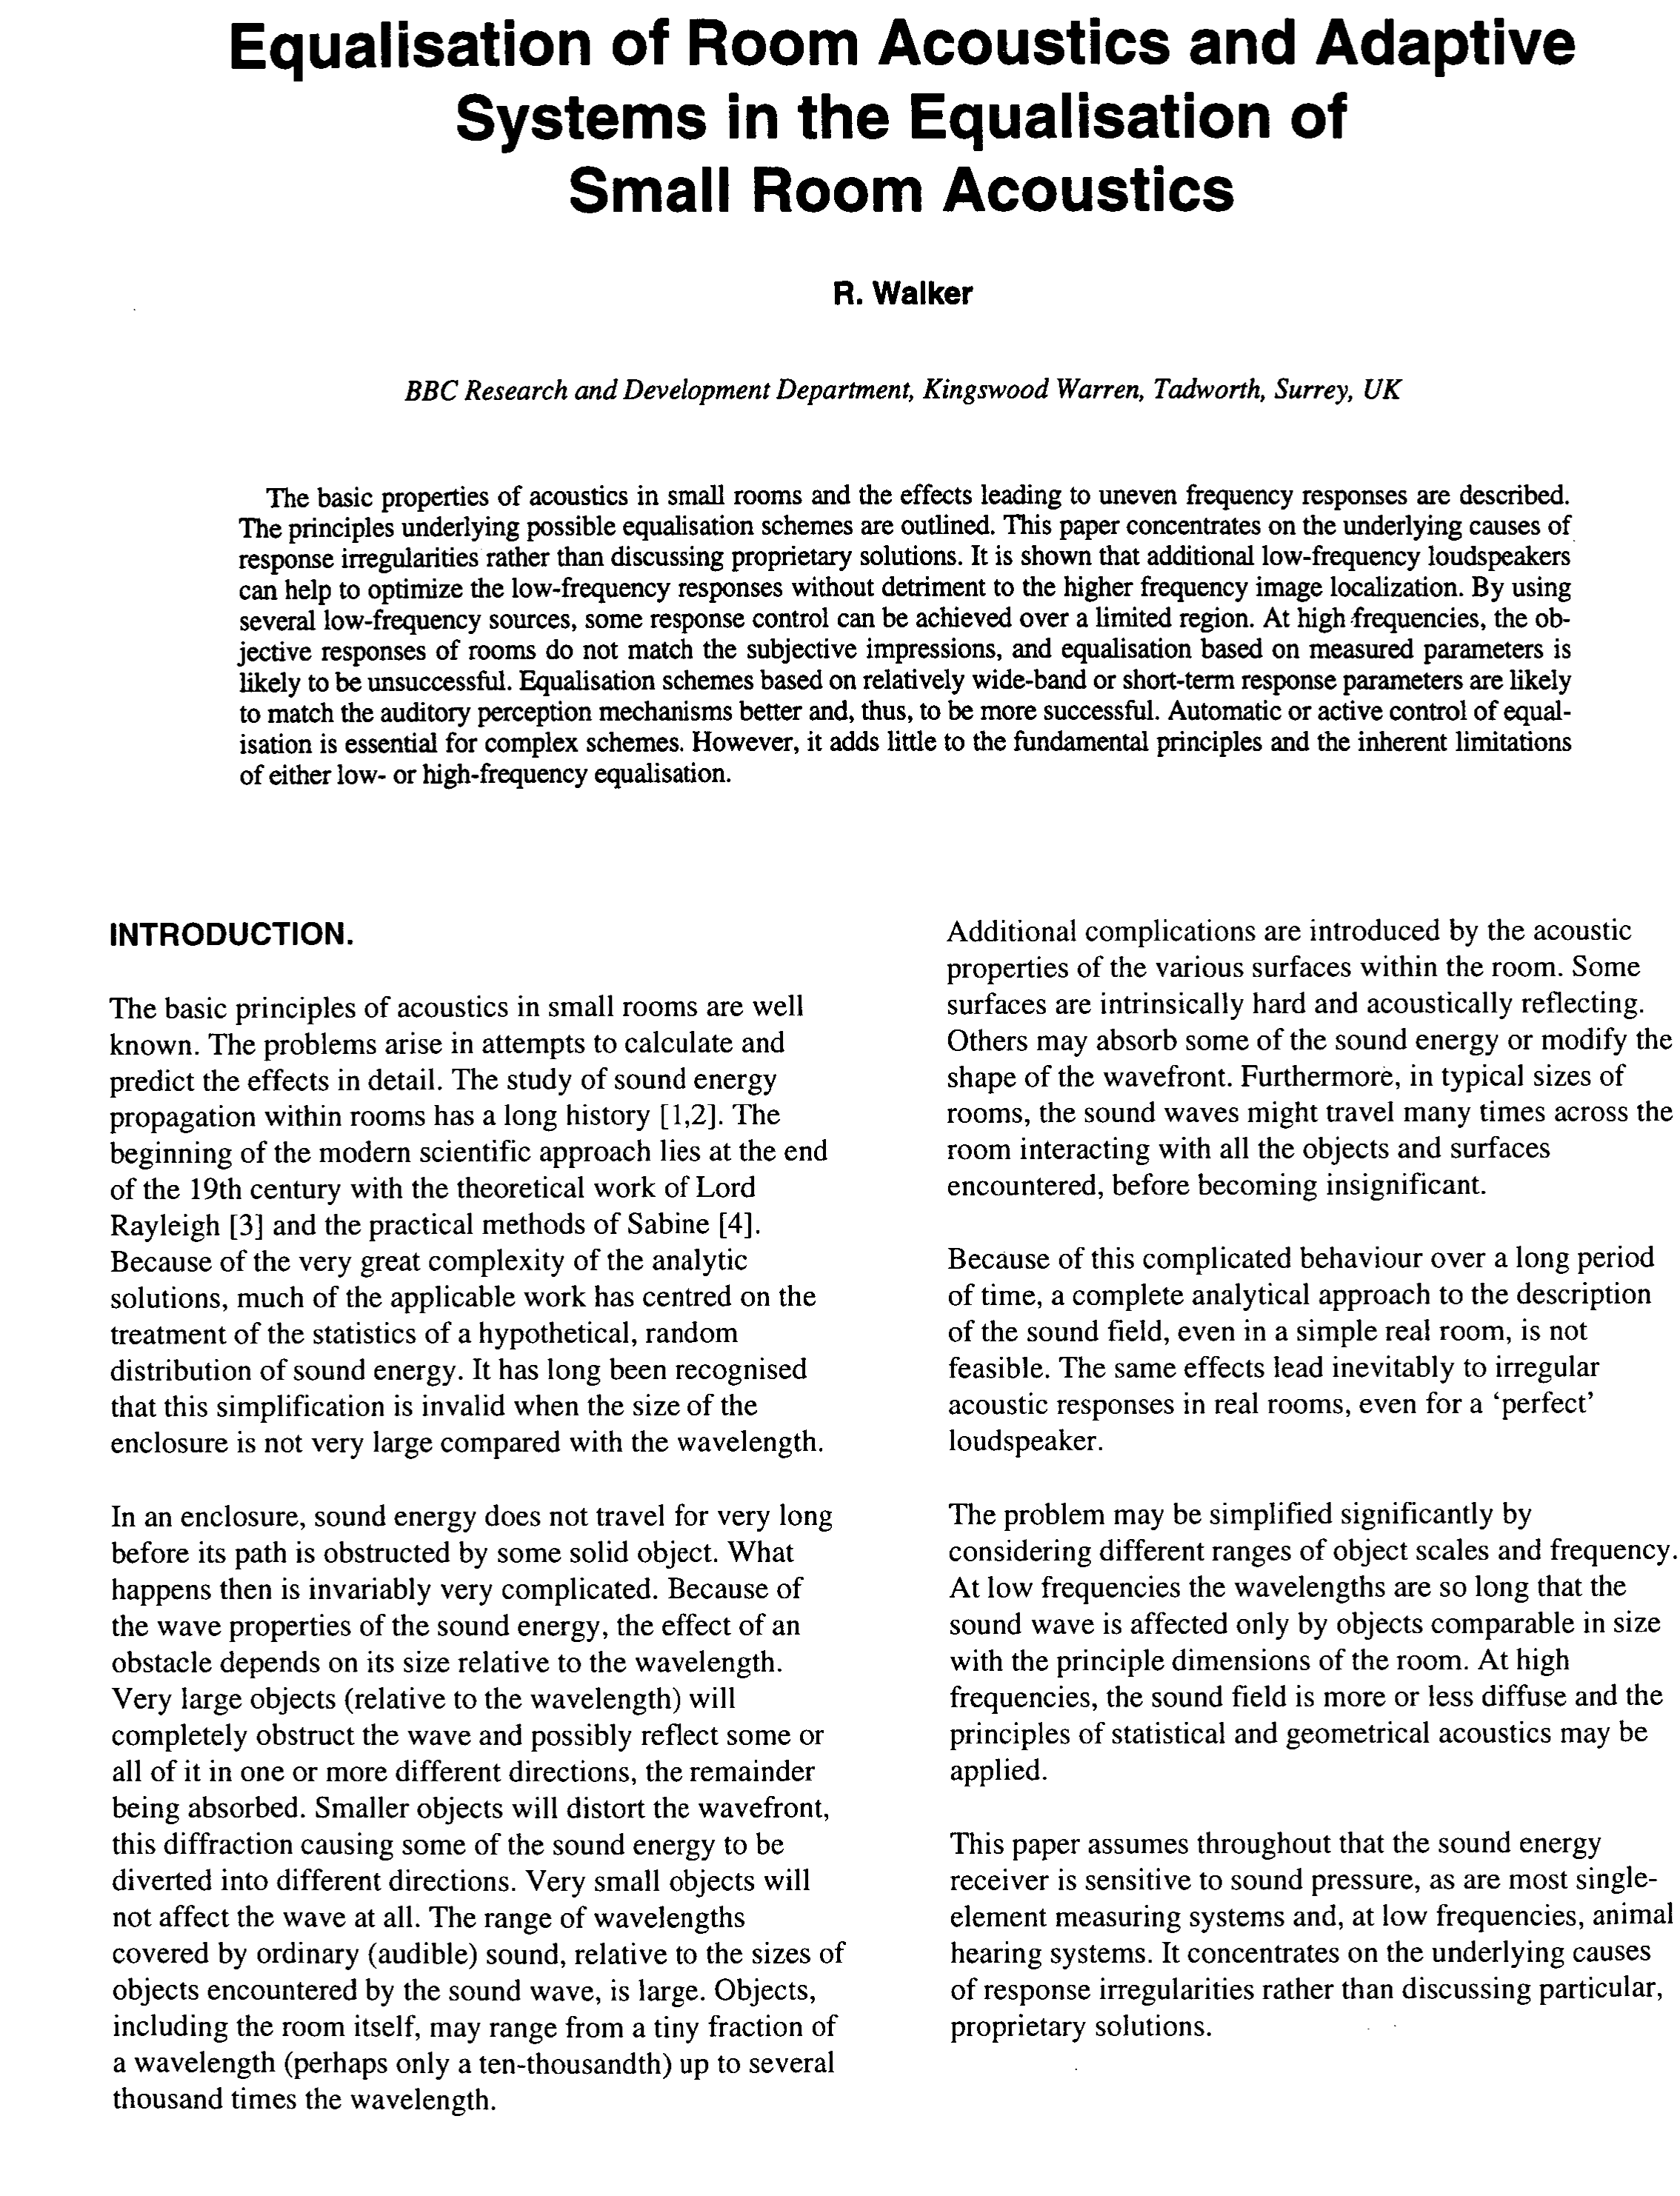 AES E-Library » Equalization of Room Acoustics and Adaptive Systems